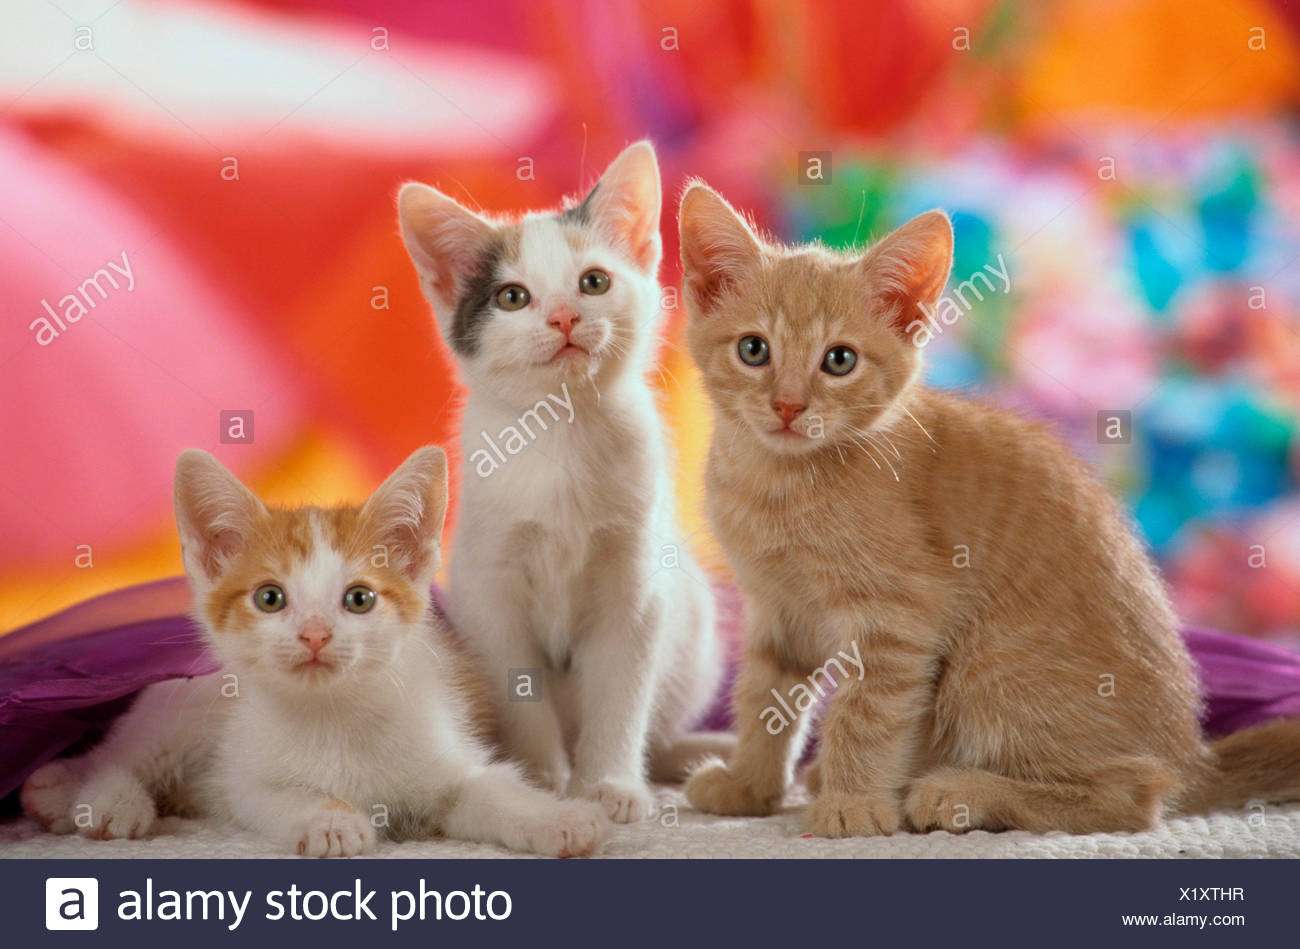 Domestic cat Three kittens front multicoloured background - Stock Image